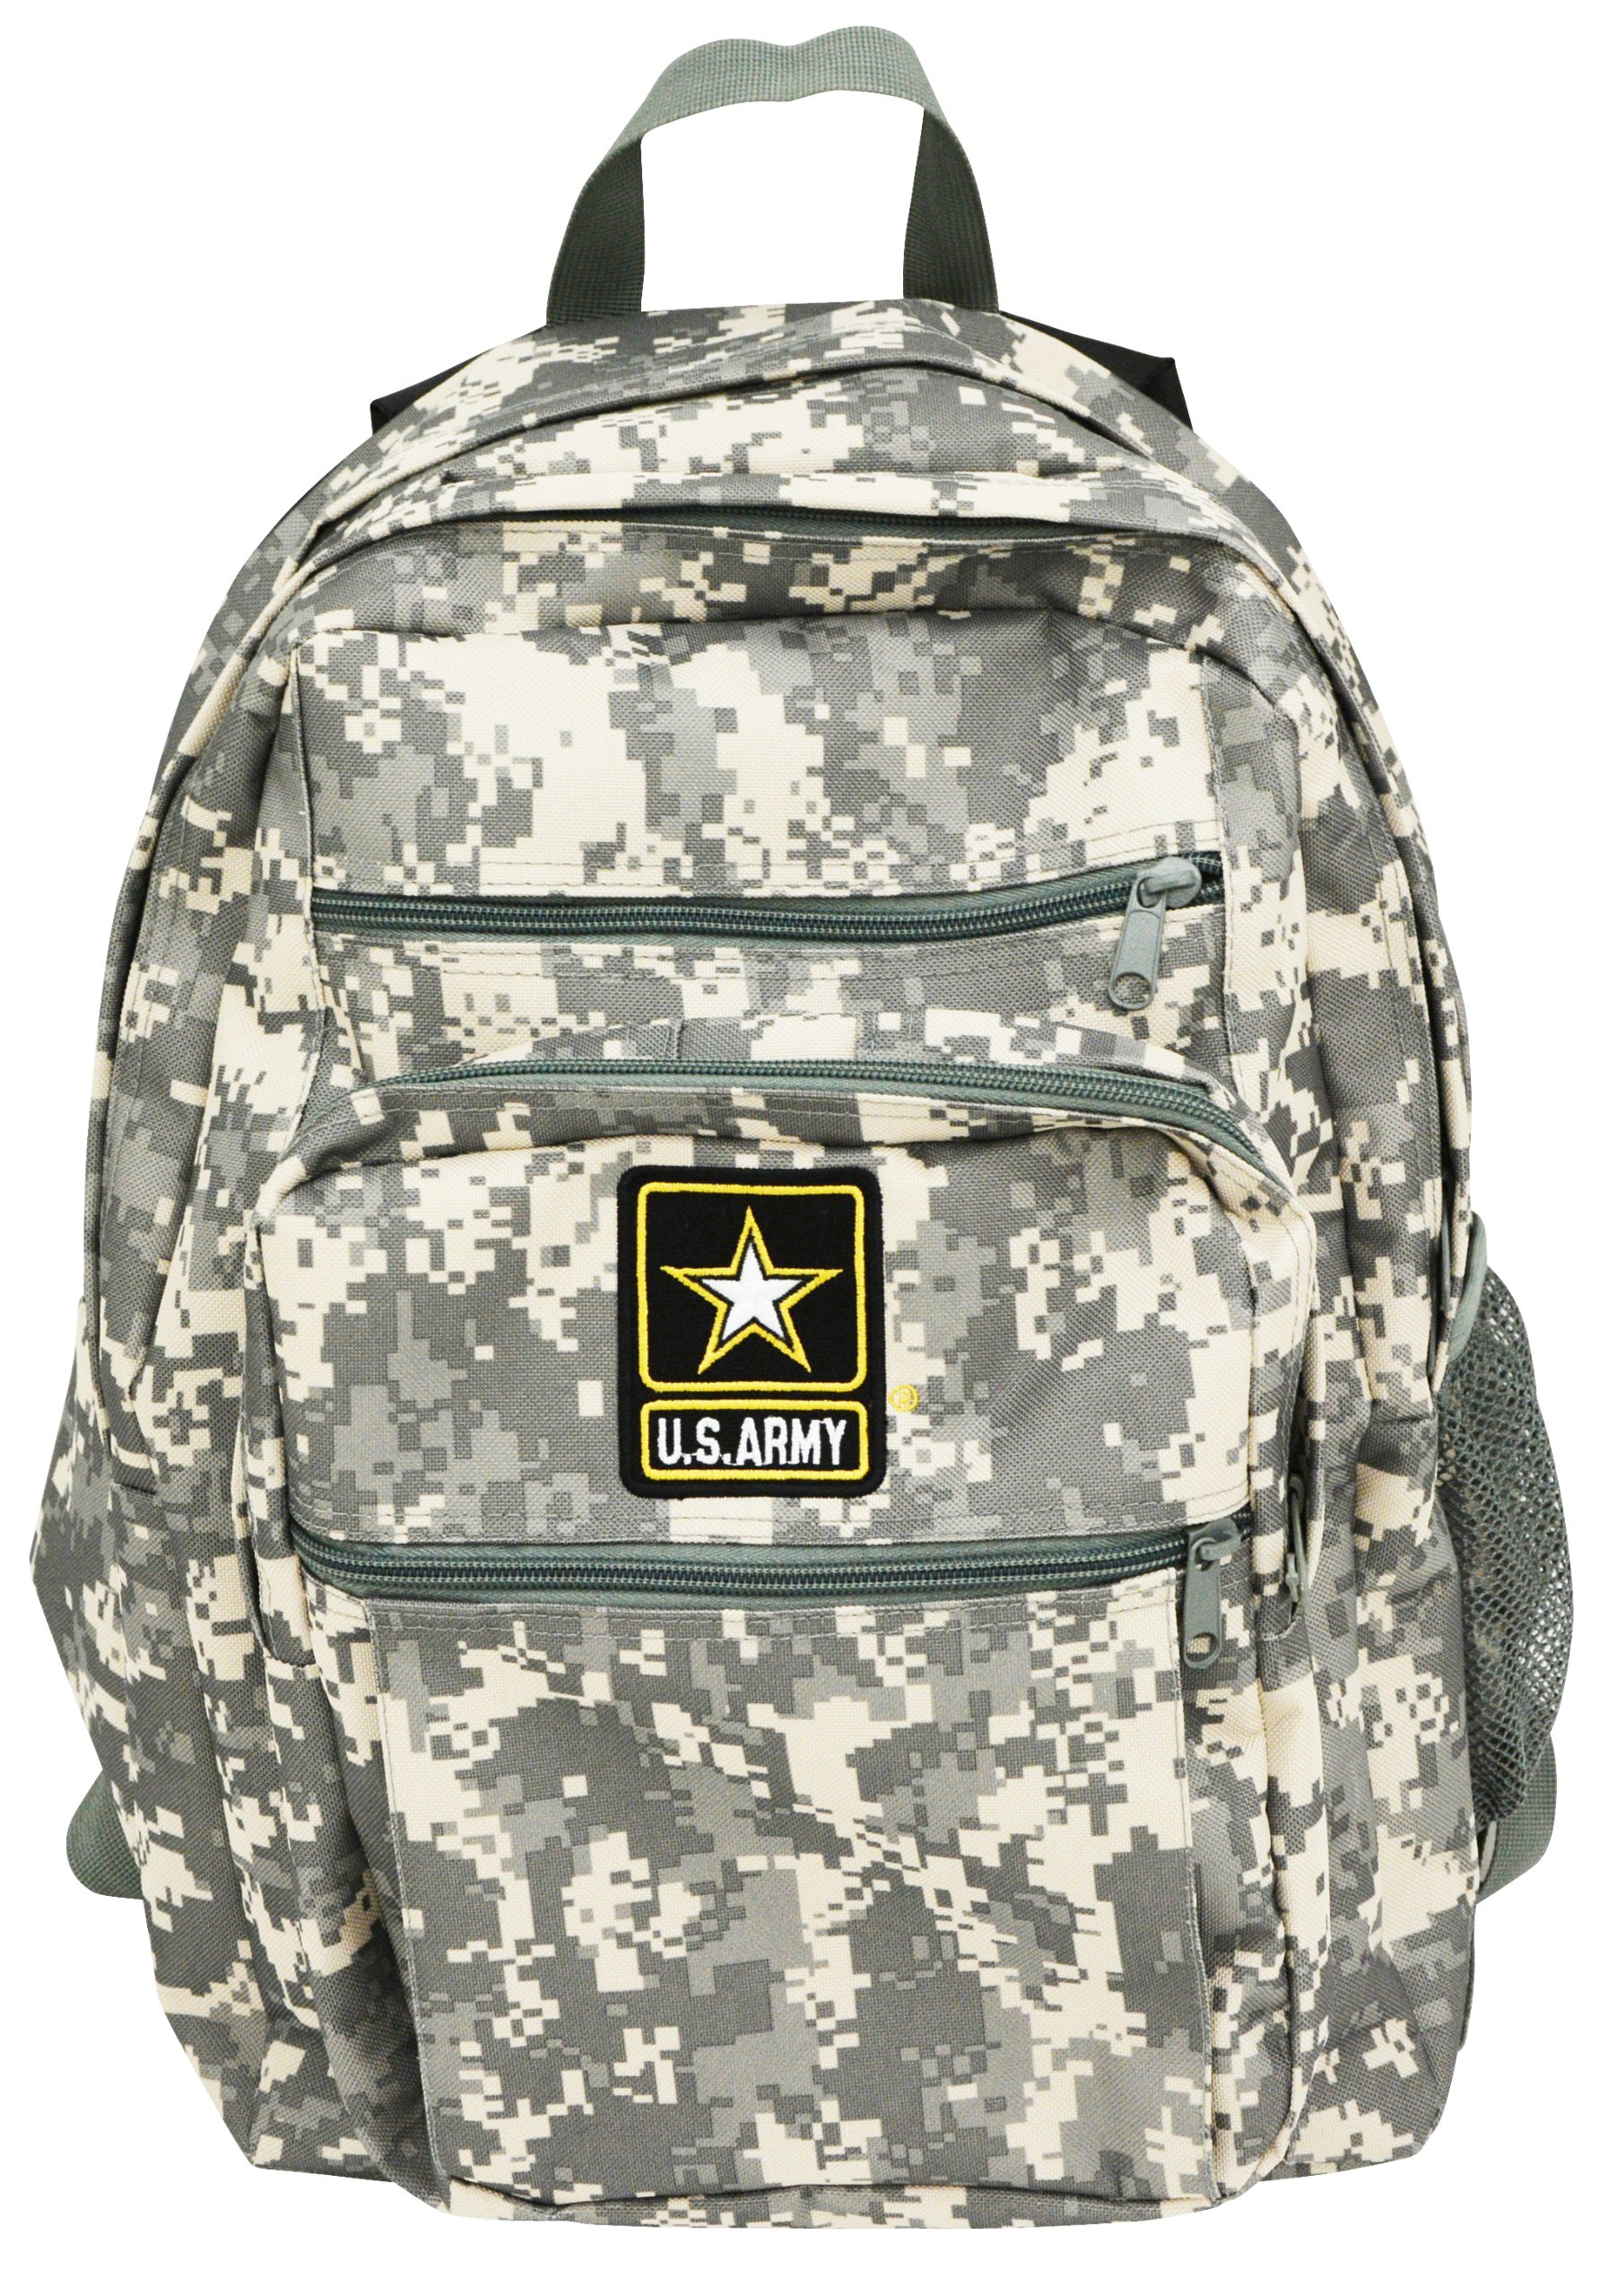 Official US Army Strong Military Backpack Bag Digital Camouflage Camo Print |...